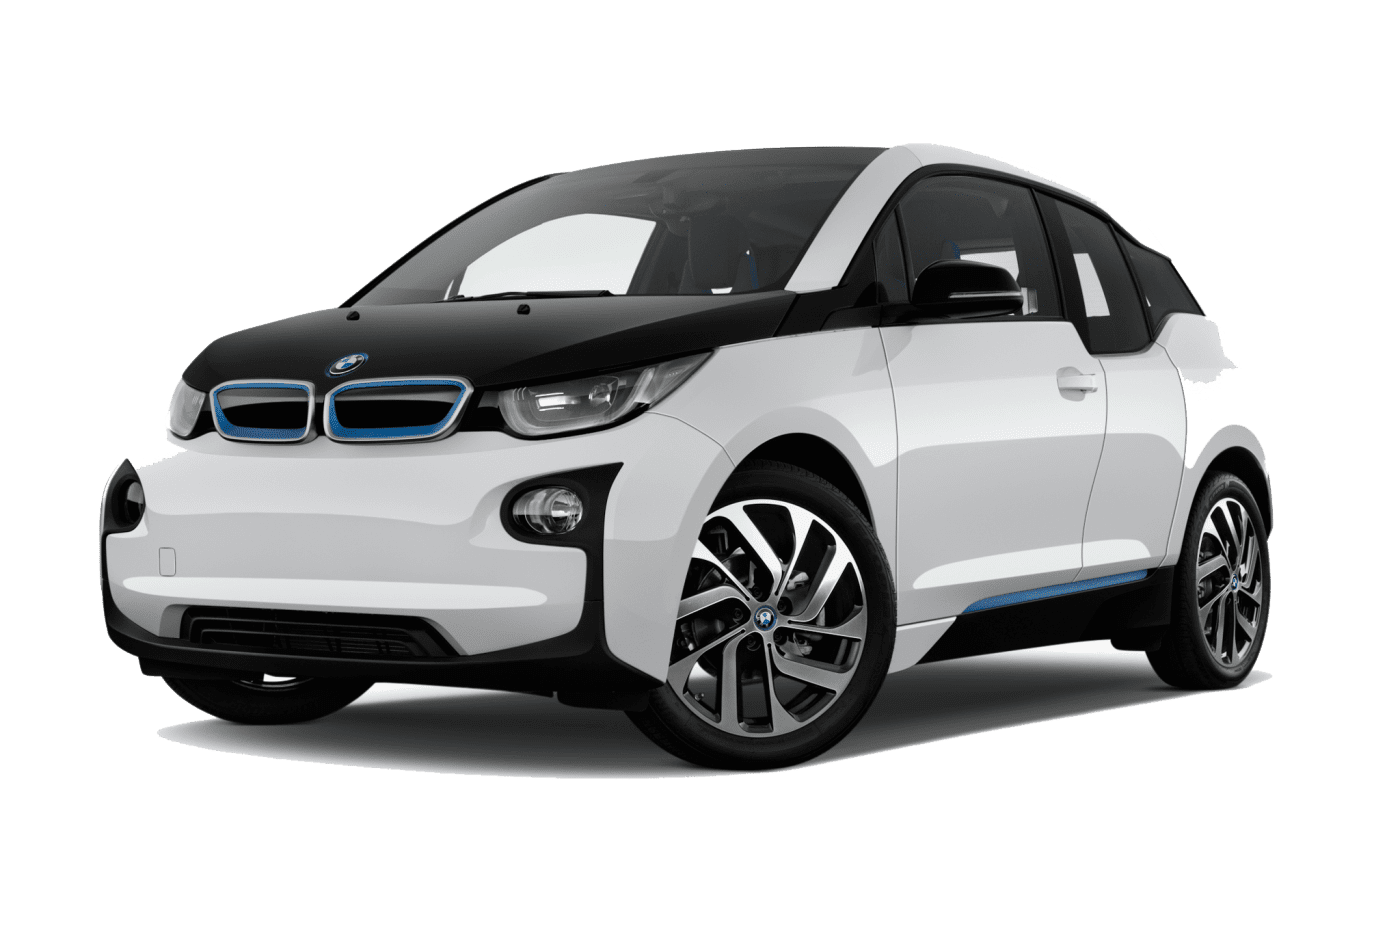 Bmw I3 Voor Slechts 495 Per Maand Mobility Service Electric